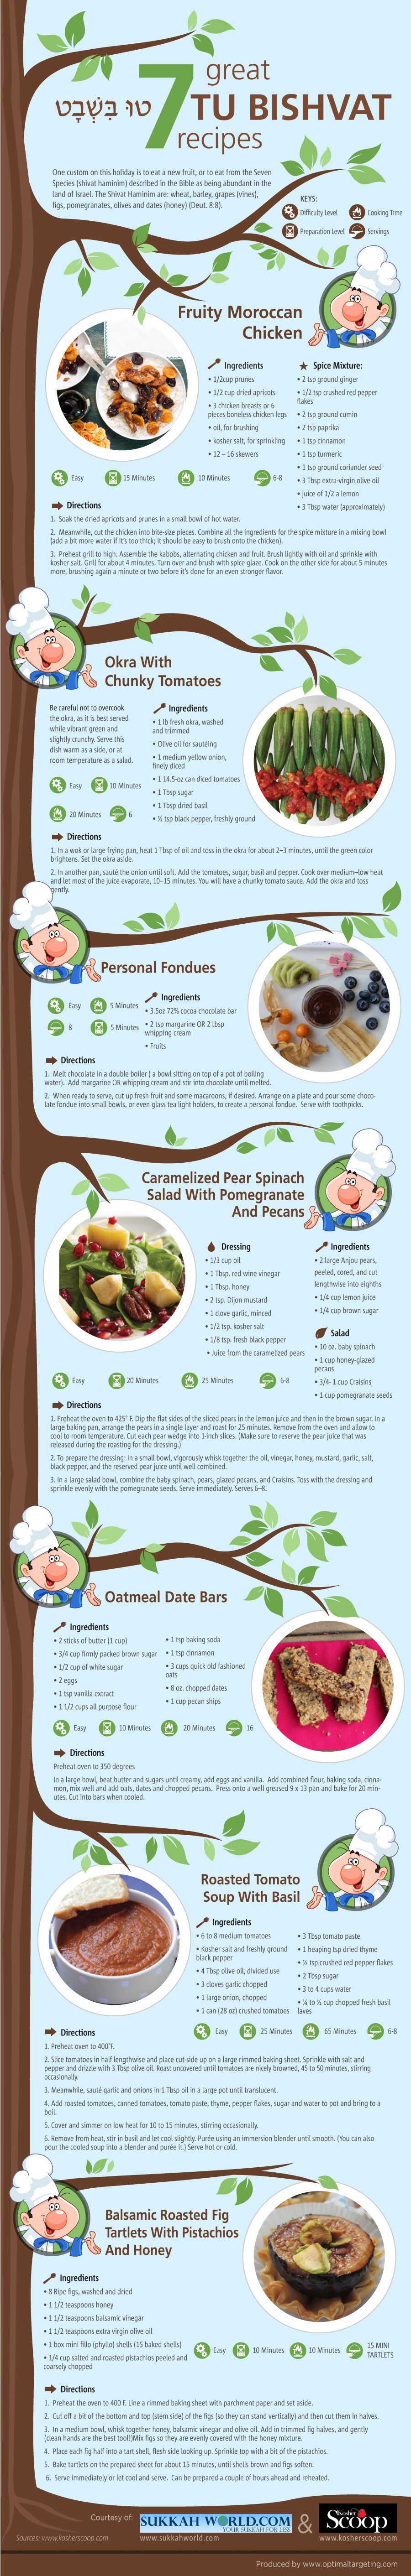 Tu Bishvat Recipes-Infographic